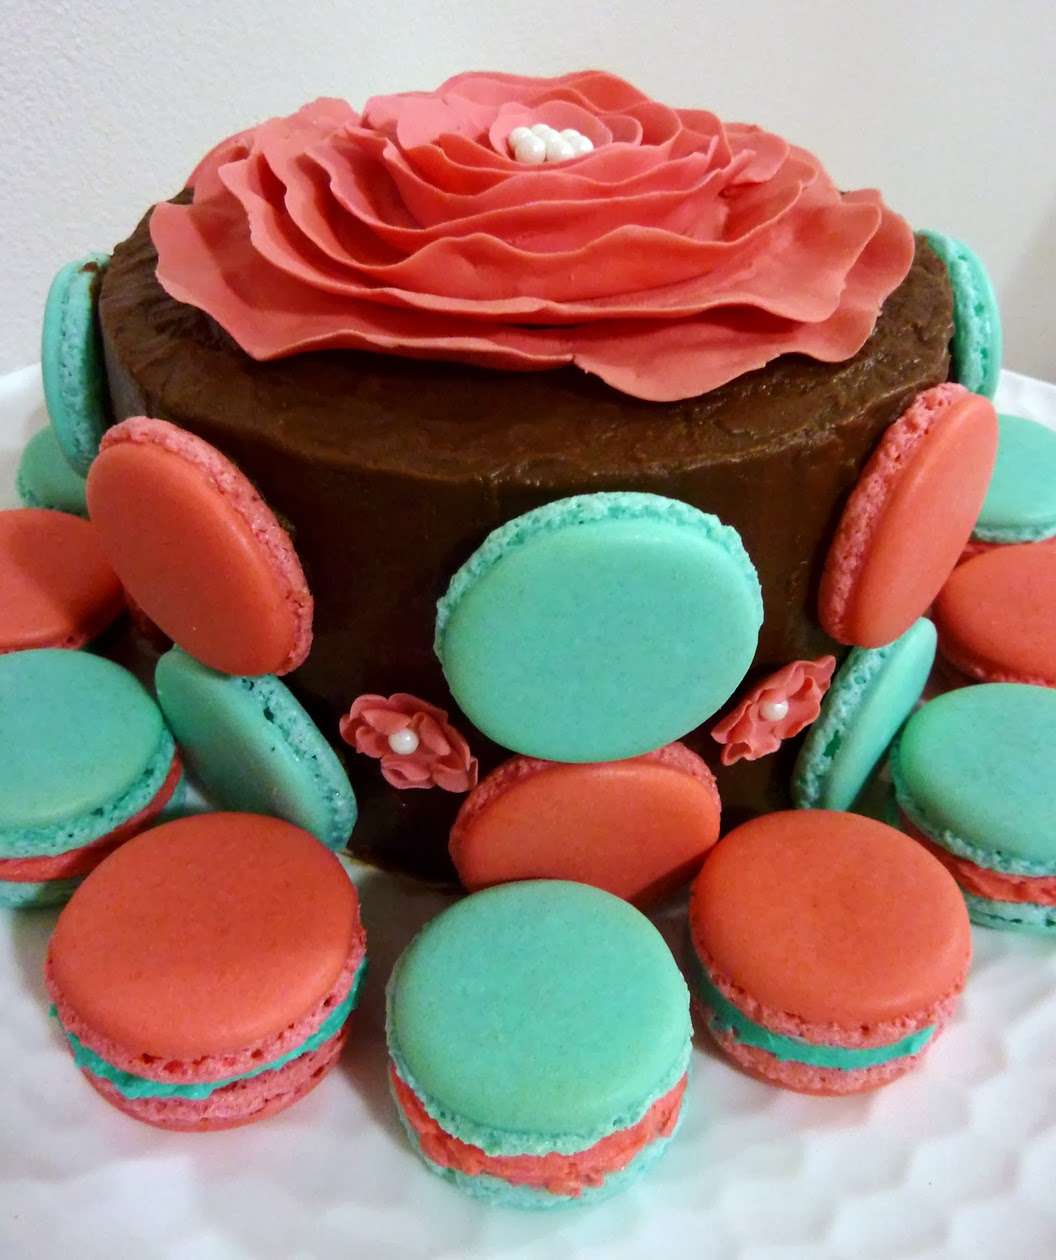 Chocolate cake with peppermint buttercream filling, fudge frosting and peppermint macarons